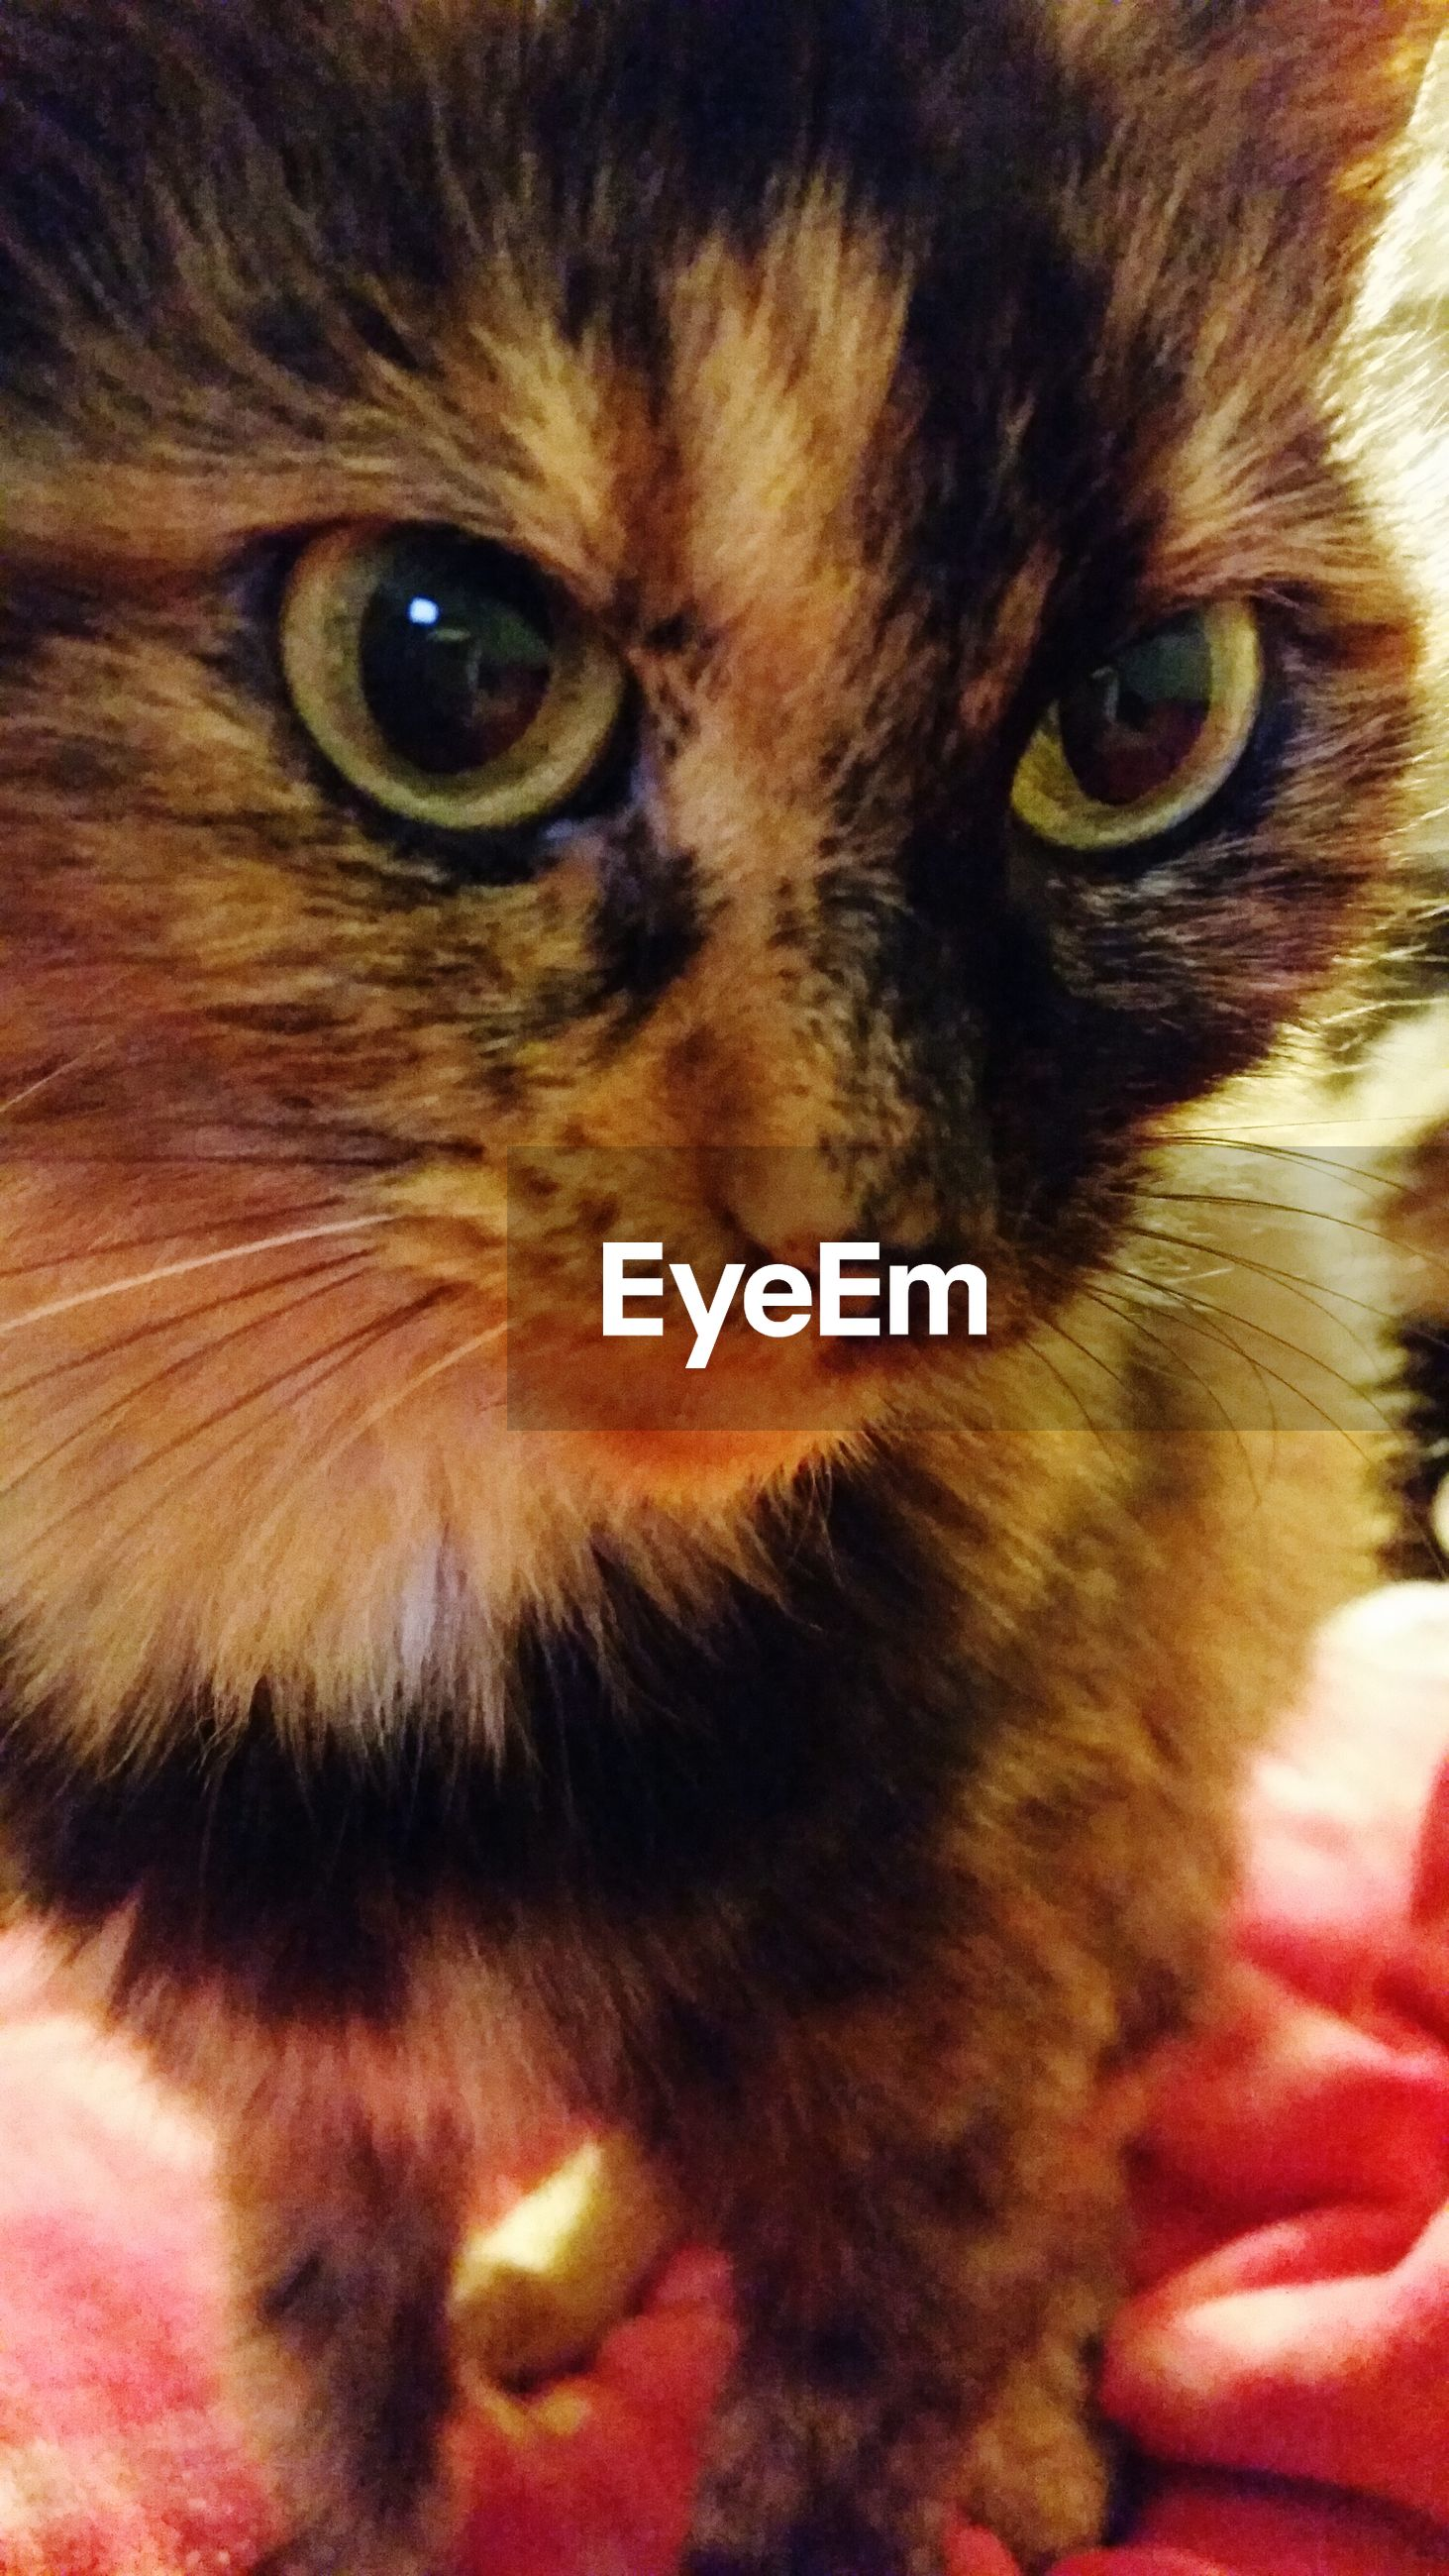 pets, domestic animals, one animal, domestic cat, animal themes, cat, mammal, feline, indoors, whisker, close-up, animal head, portrait, looking at camera, animal eye, part of, staring, animal body part, animal hair